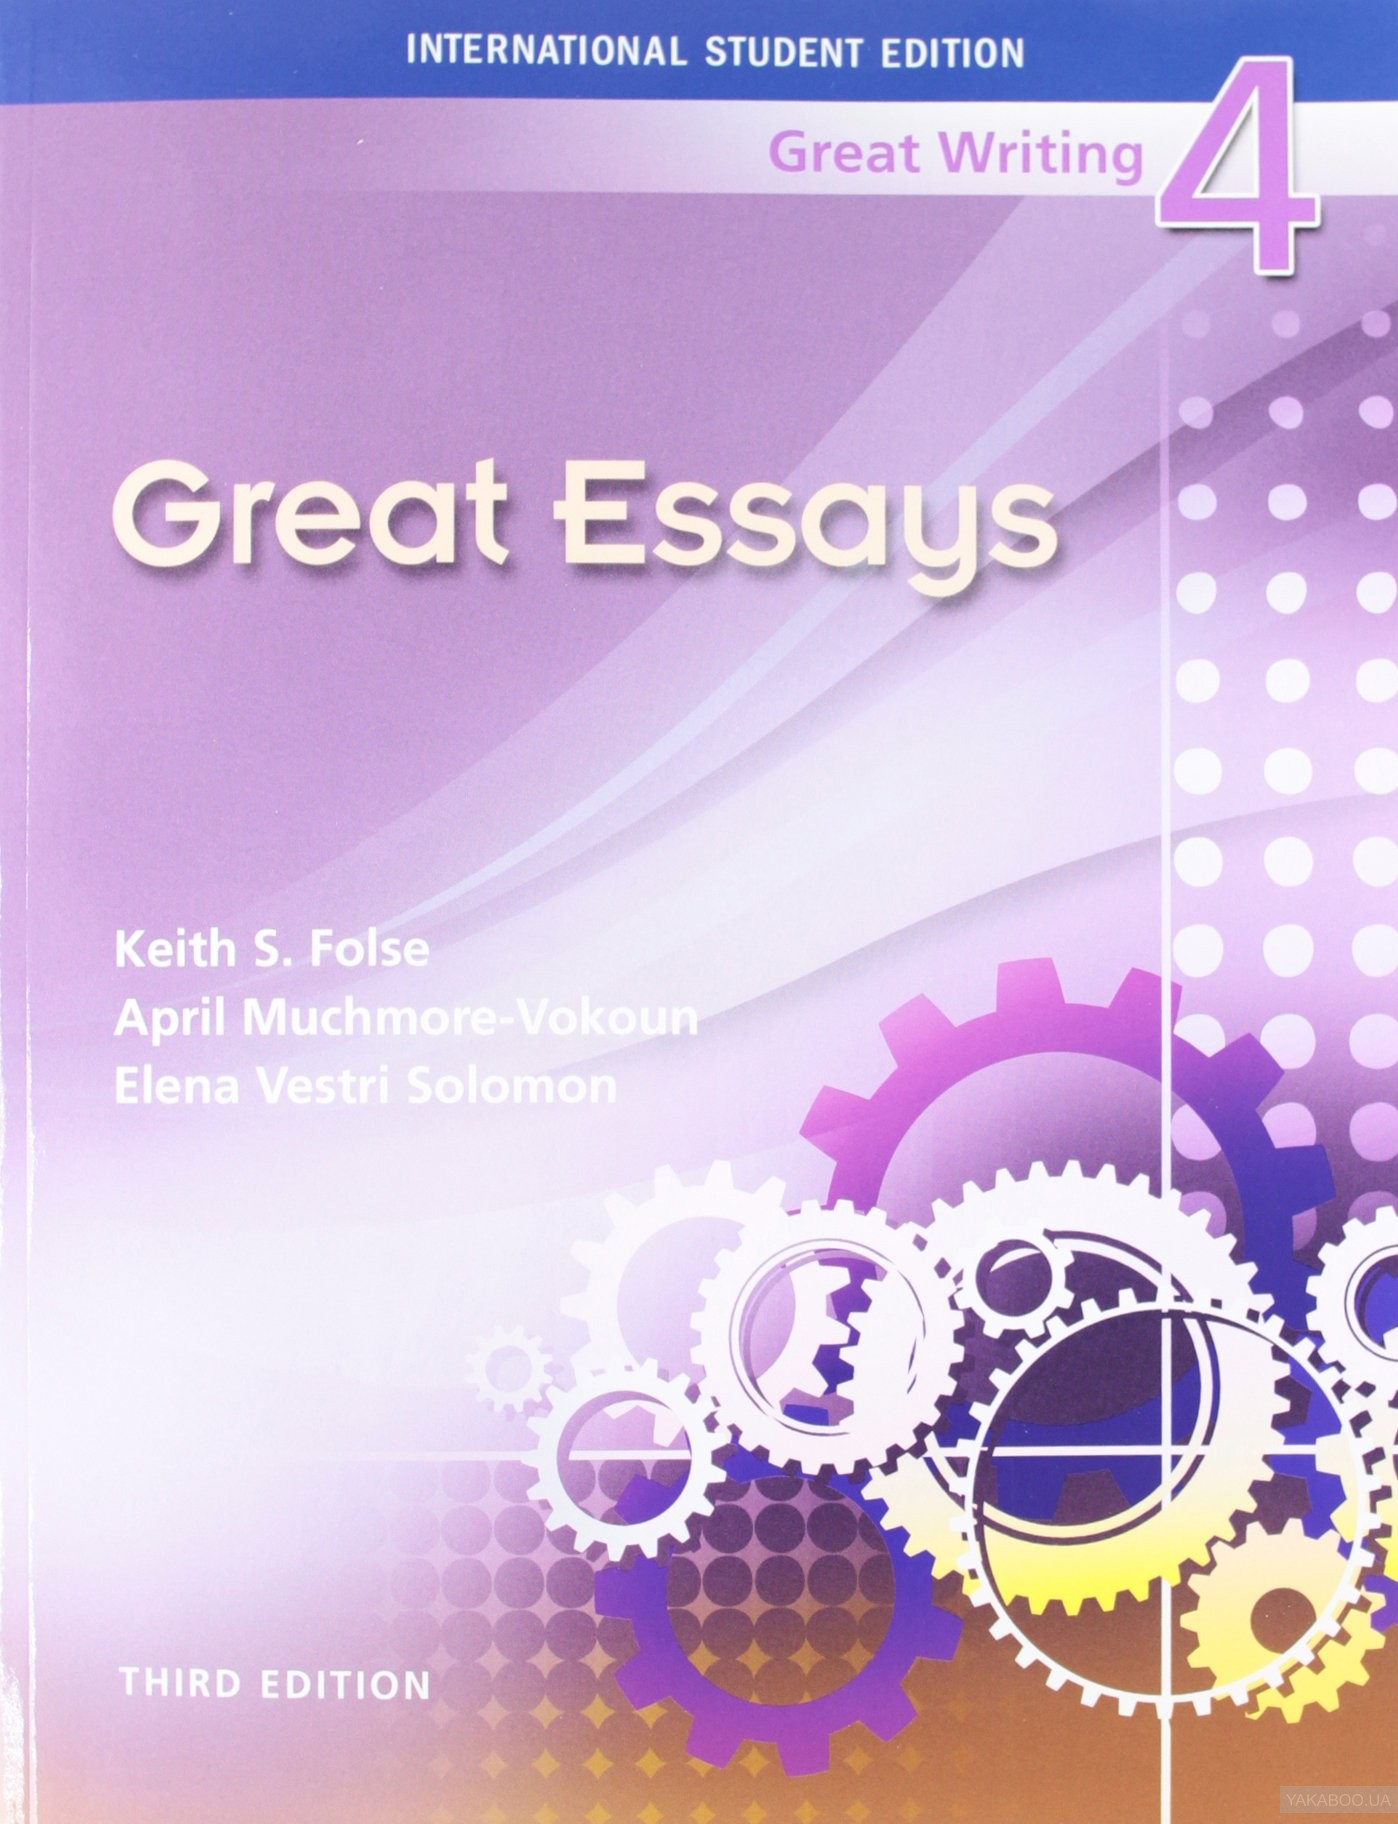 3rd clear edition essay writing The pearson grammar workbook is a comprehensive source of instruction for students who need additional grammar, punctuation, and mechanics assistance covering such topics as subject-verb agreement, conjunctions, modifiers, capital letters, and vocabulary, each chapter provides helpful.